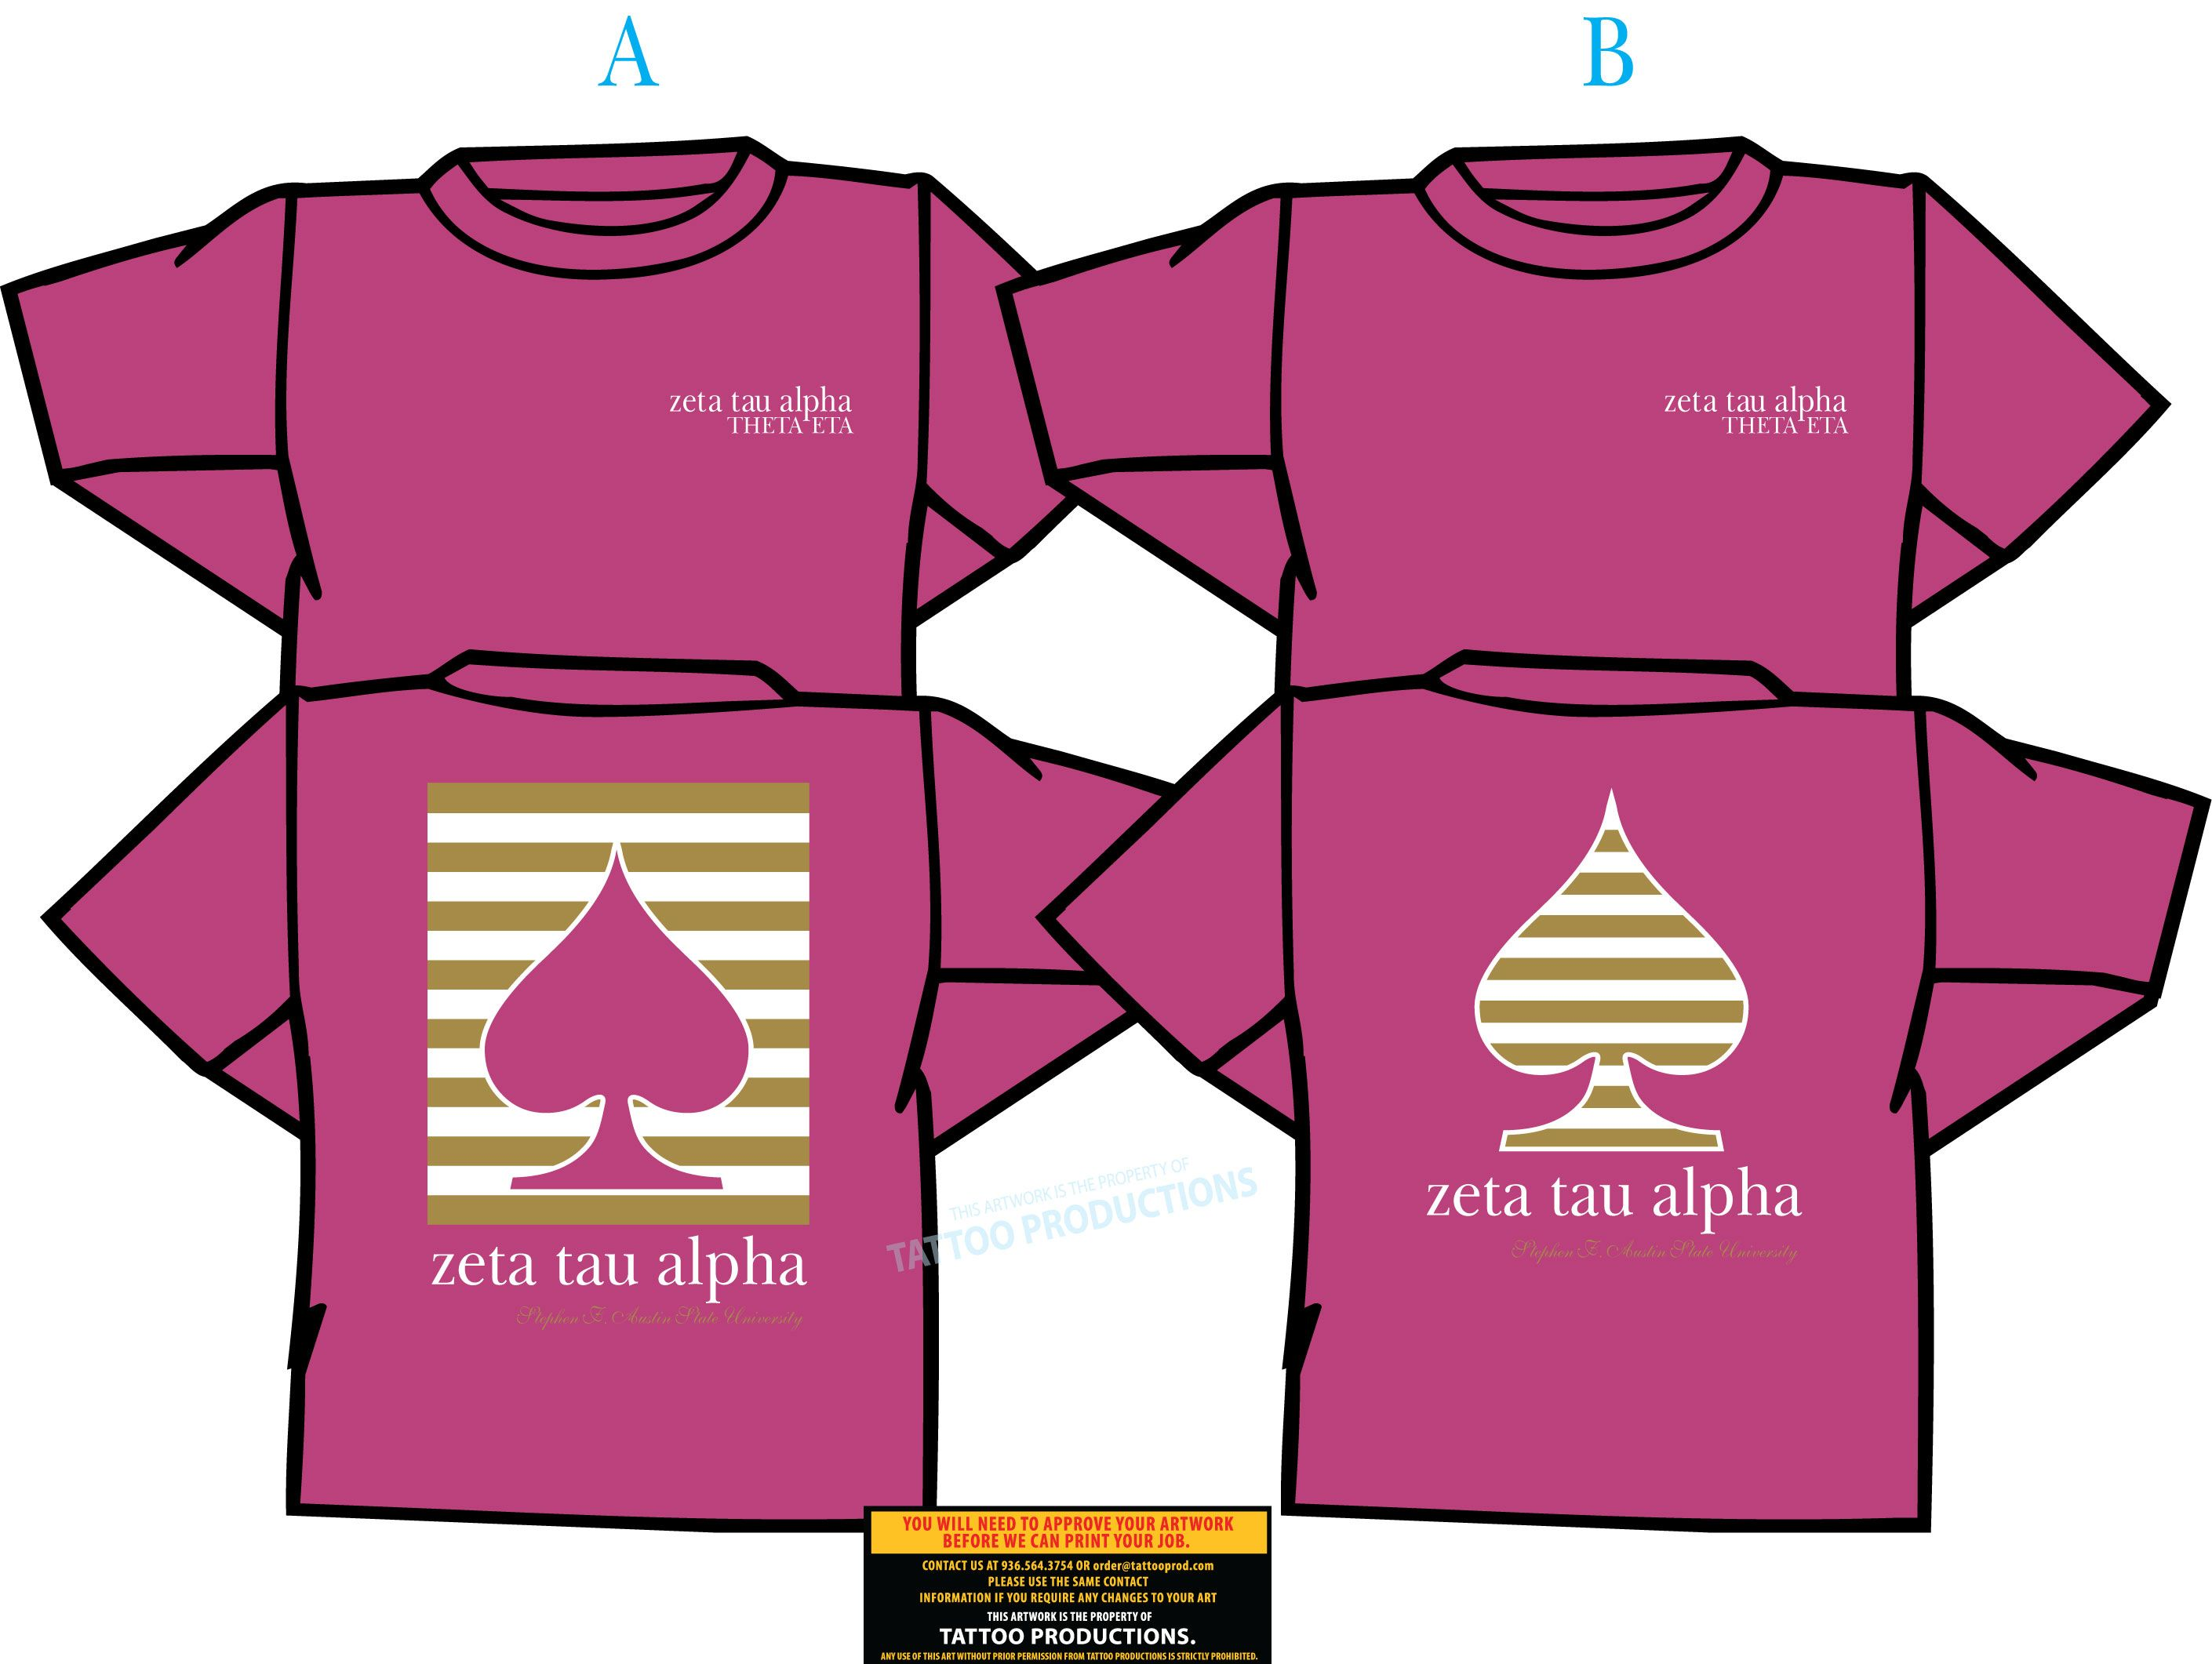 T shirt design job - Explore Zeta Tau Alpha Shirt Designs And More